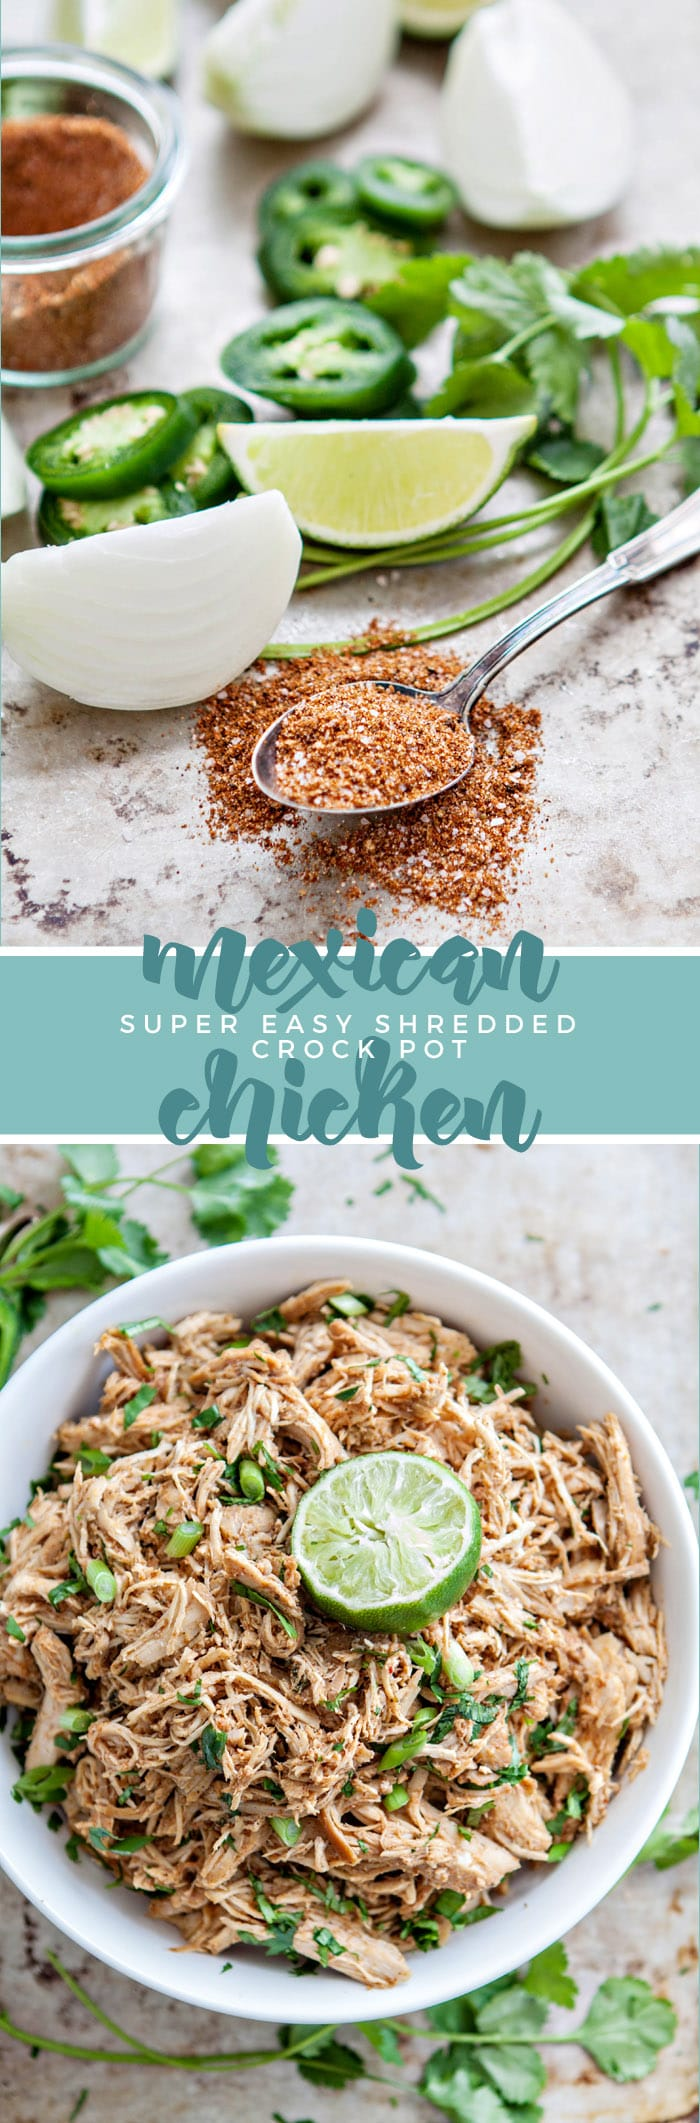 Crock Pot Mexican Chicken image